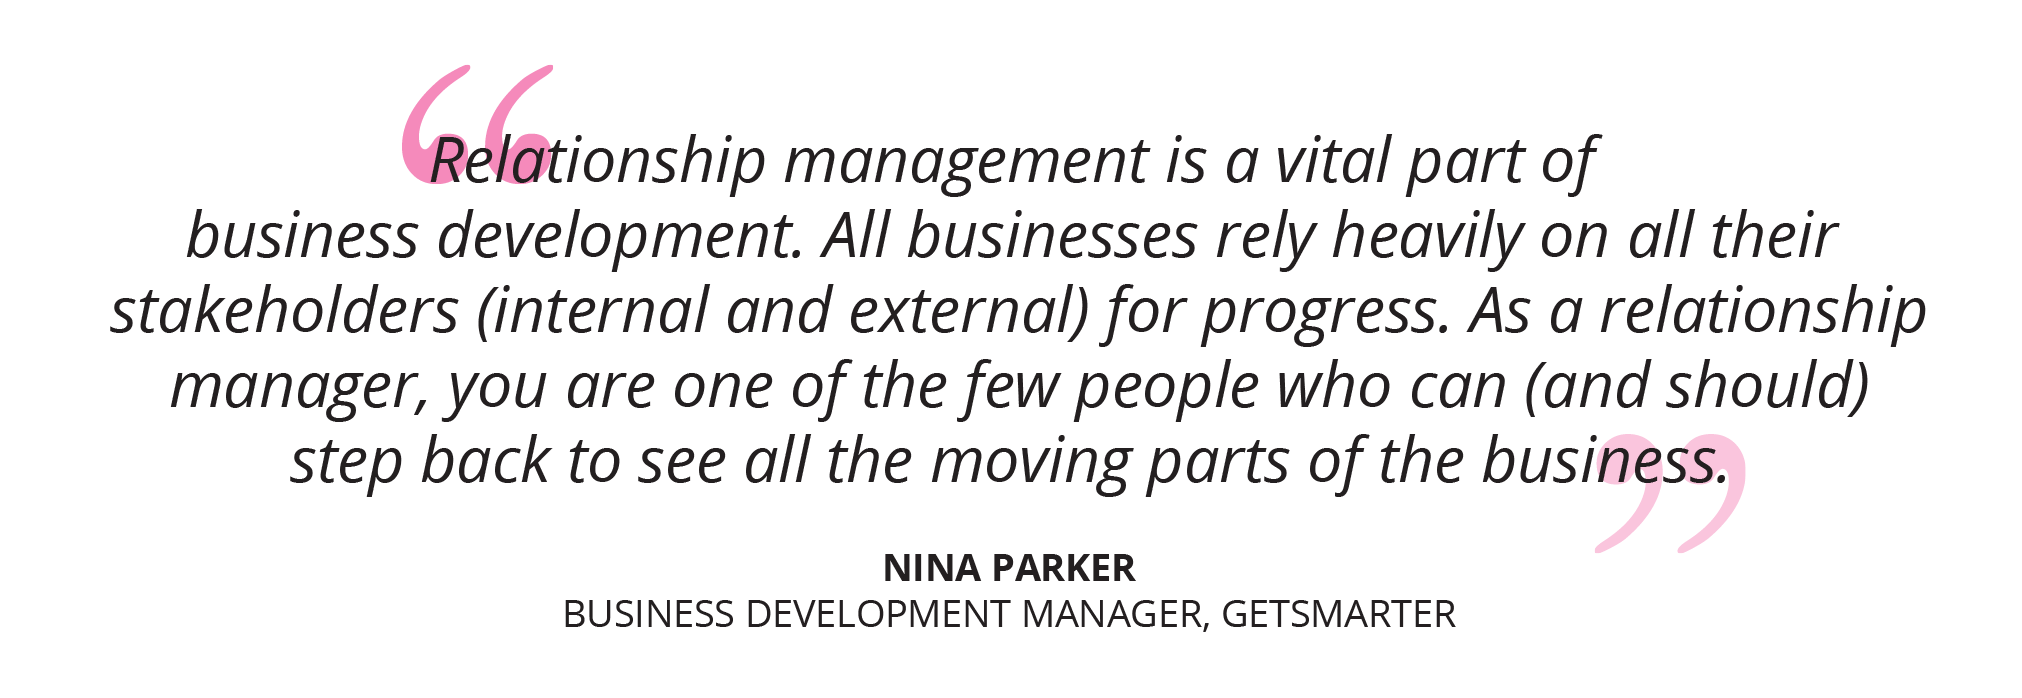 Business_Development_Manager_Quote1